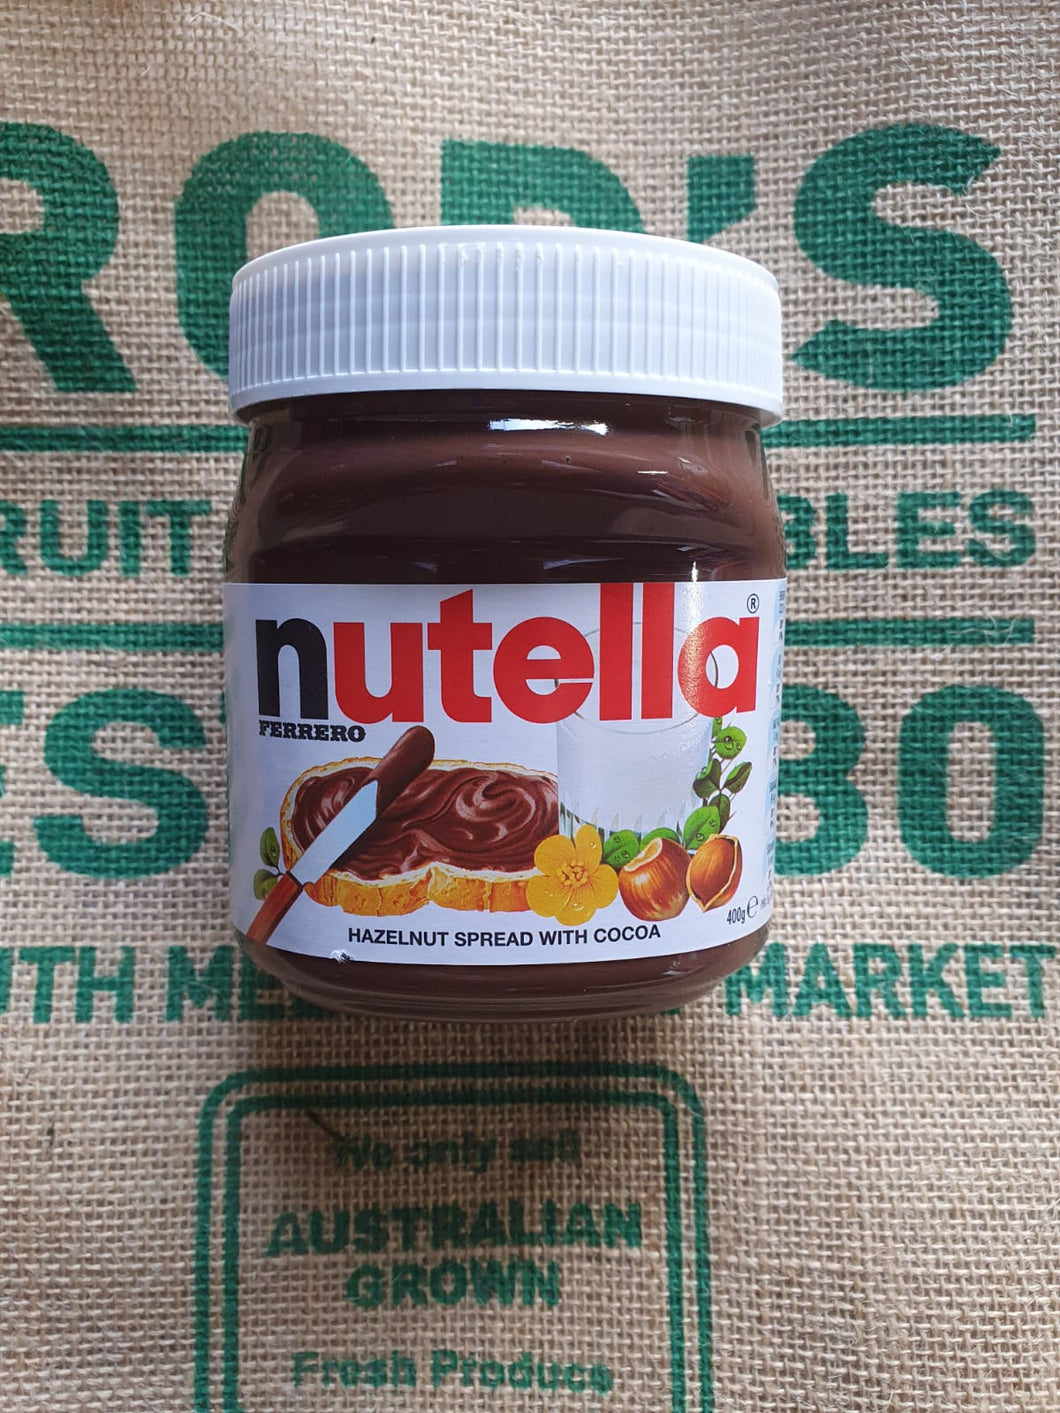 Nutella - 400g Hazelnut Spread